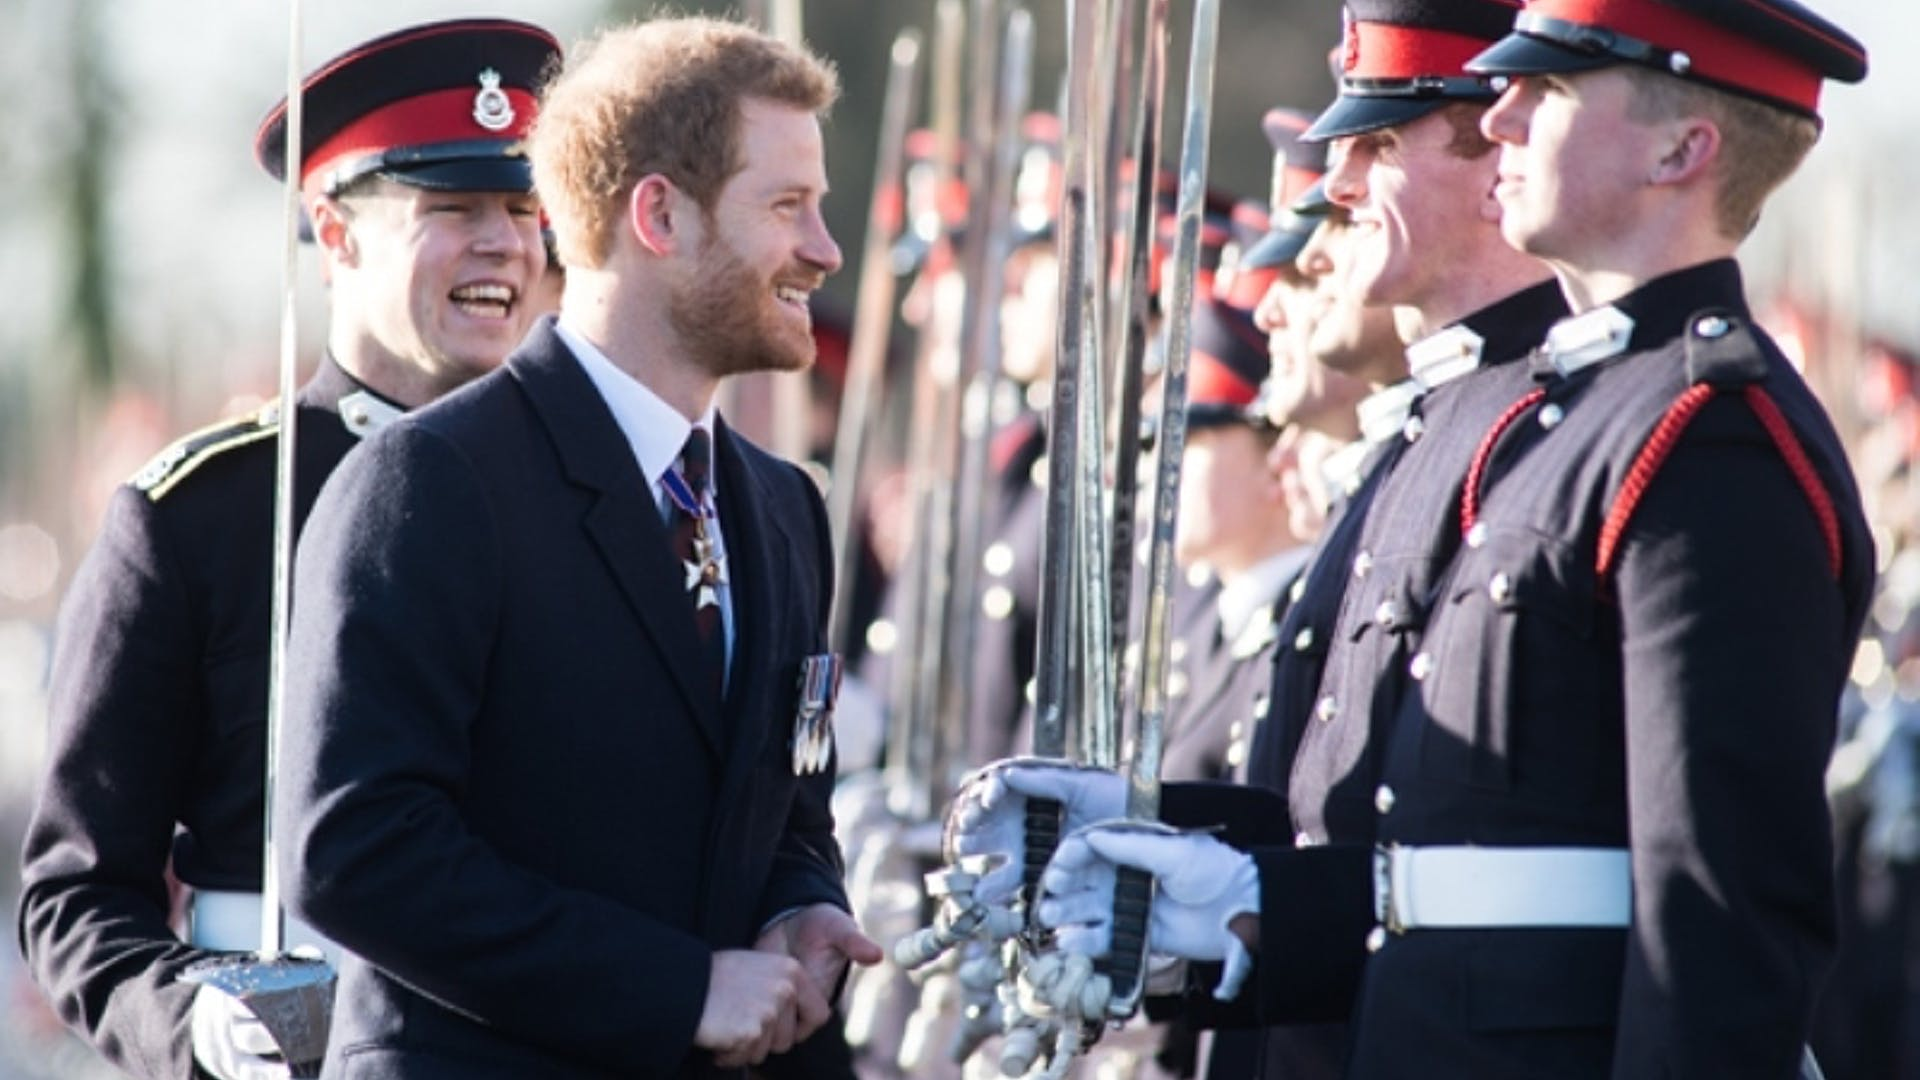 ARMYHQ 2017 147 HRH Prince Harry Sovereigns Parade 009 600 WIDE 1